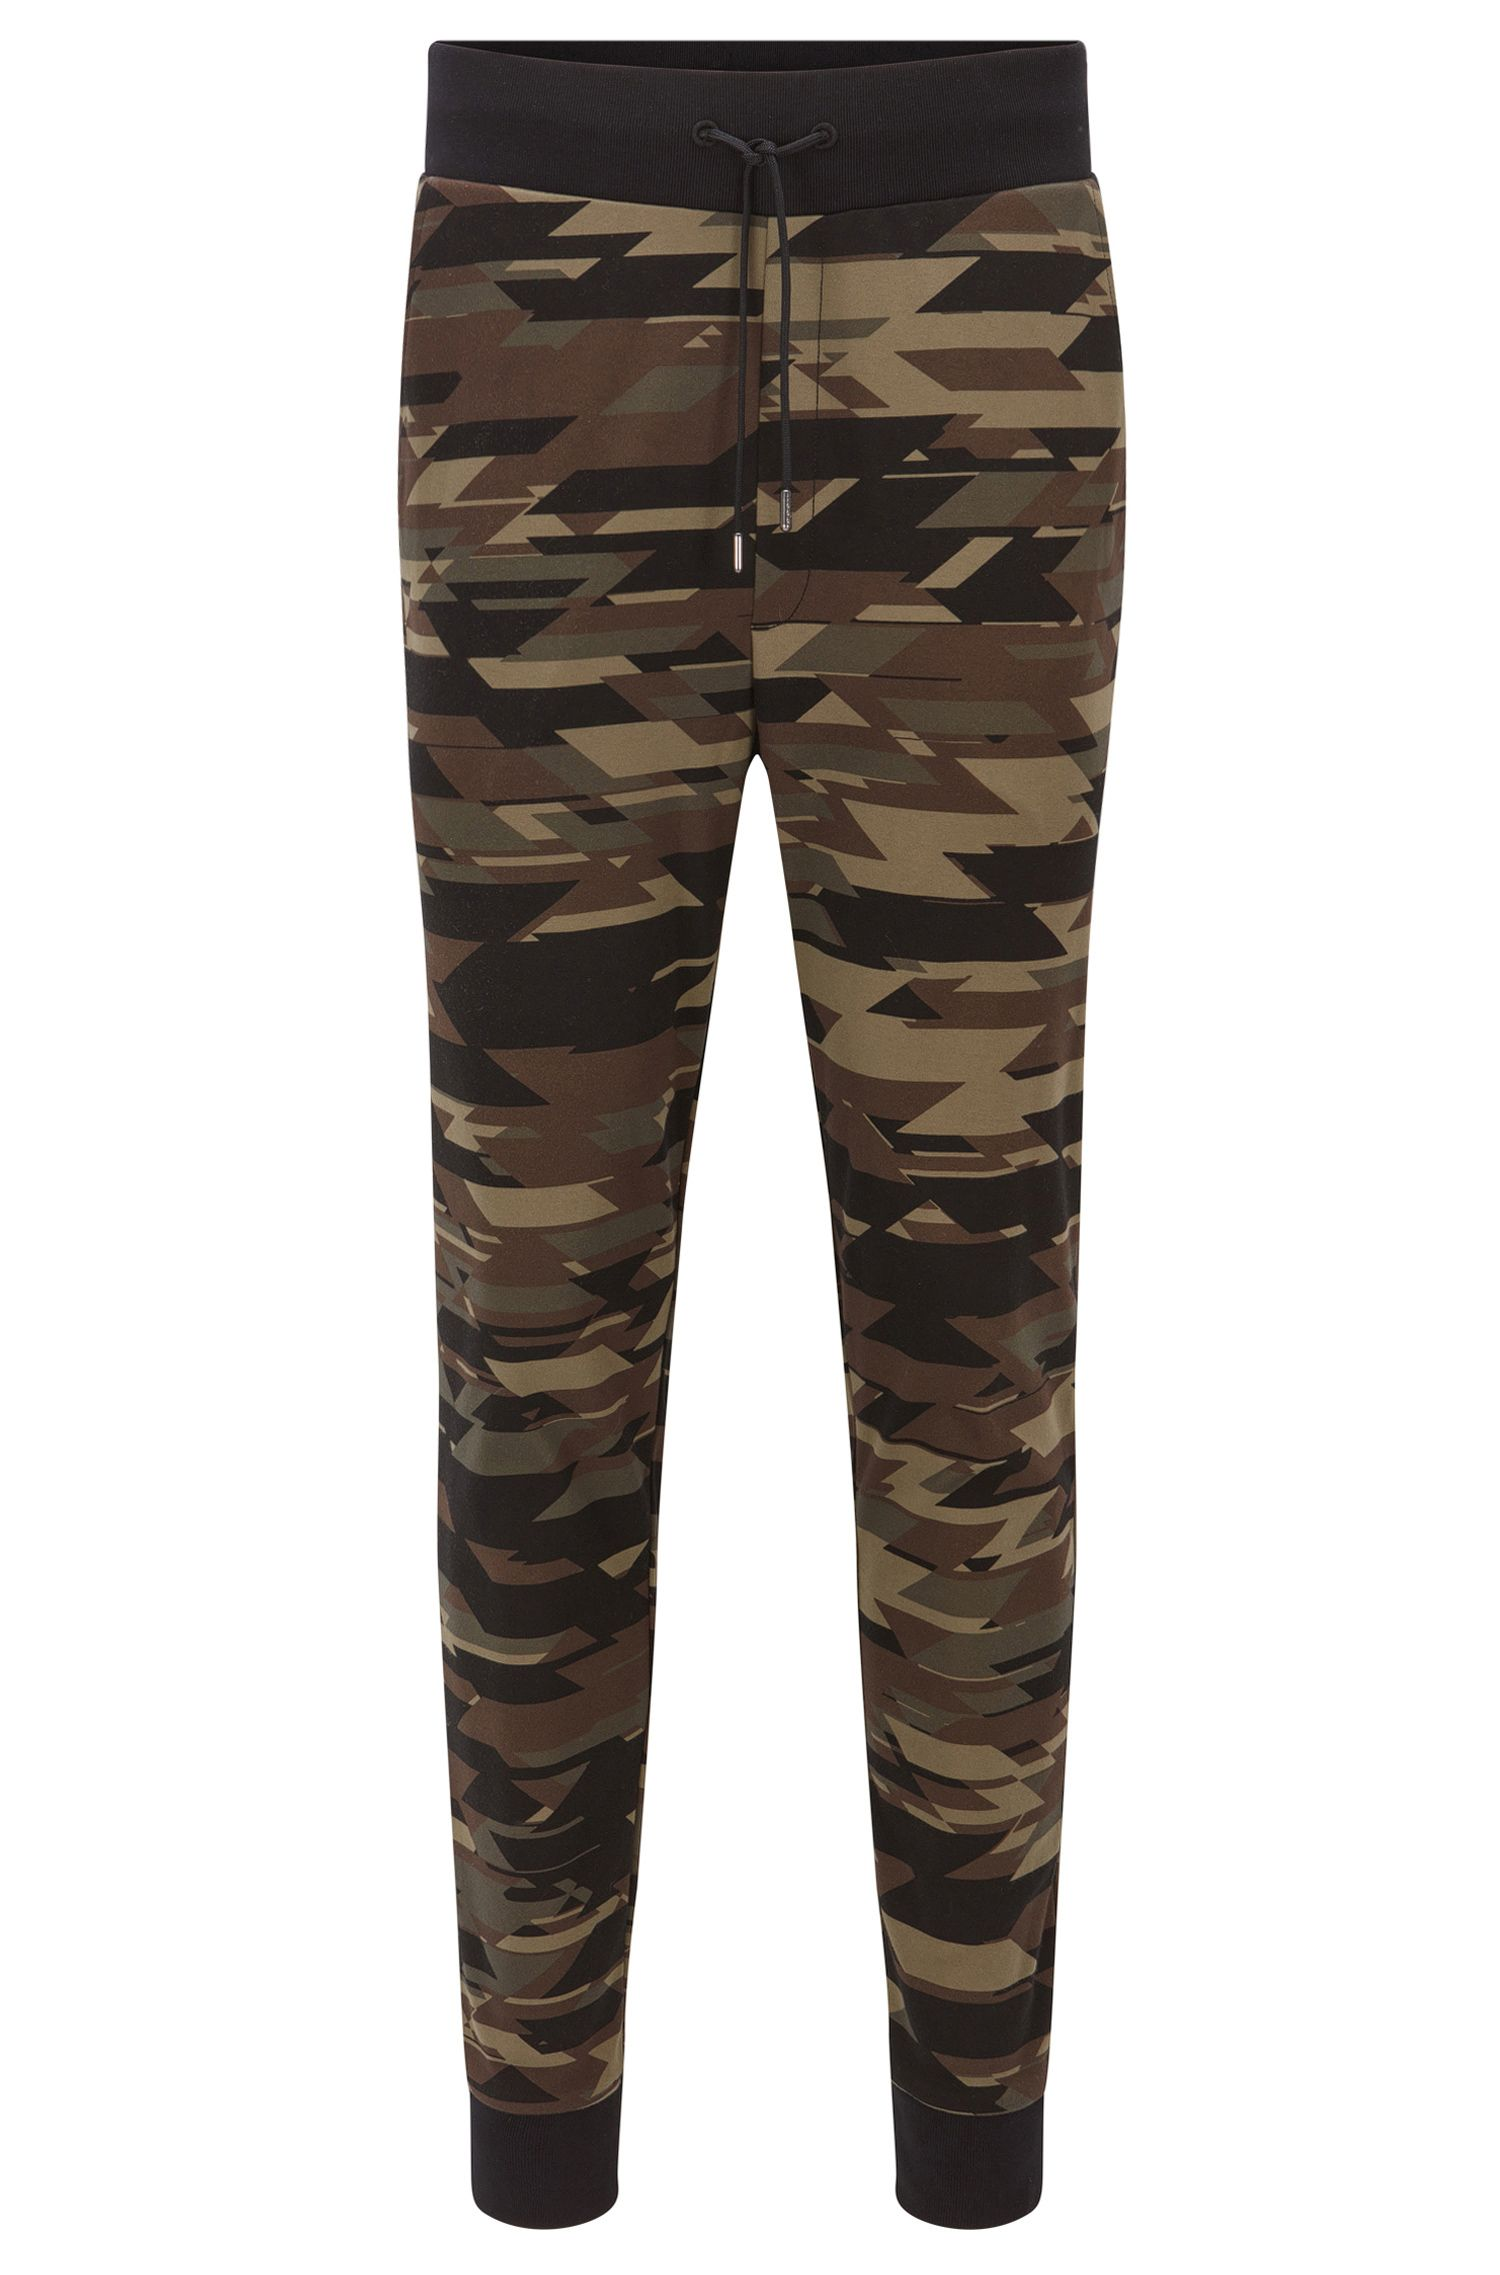 'Dilitary' | Digi-Camo Cotton Sweatpants